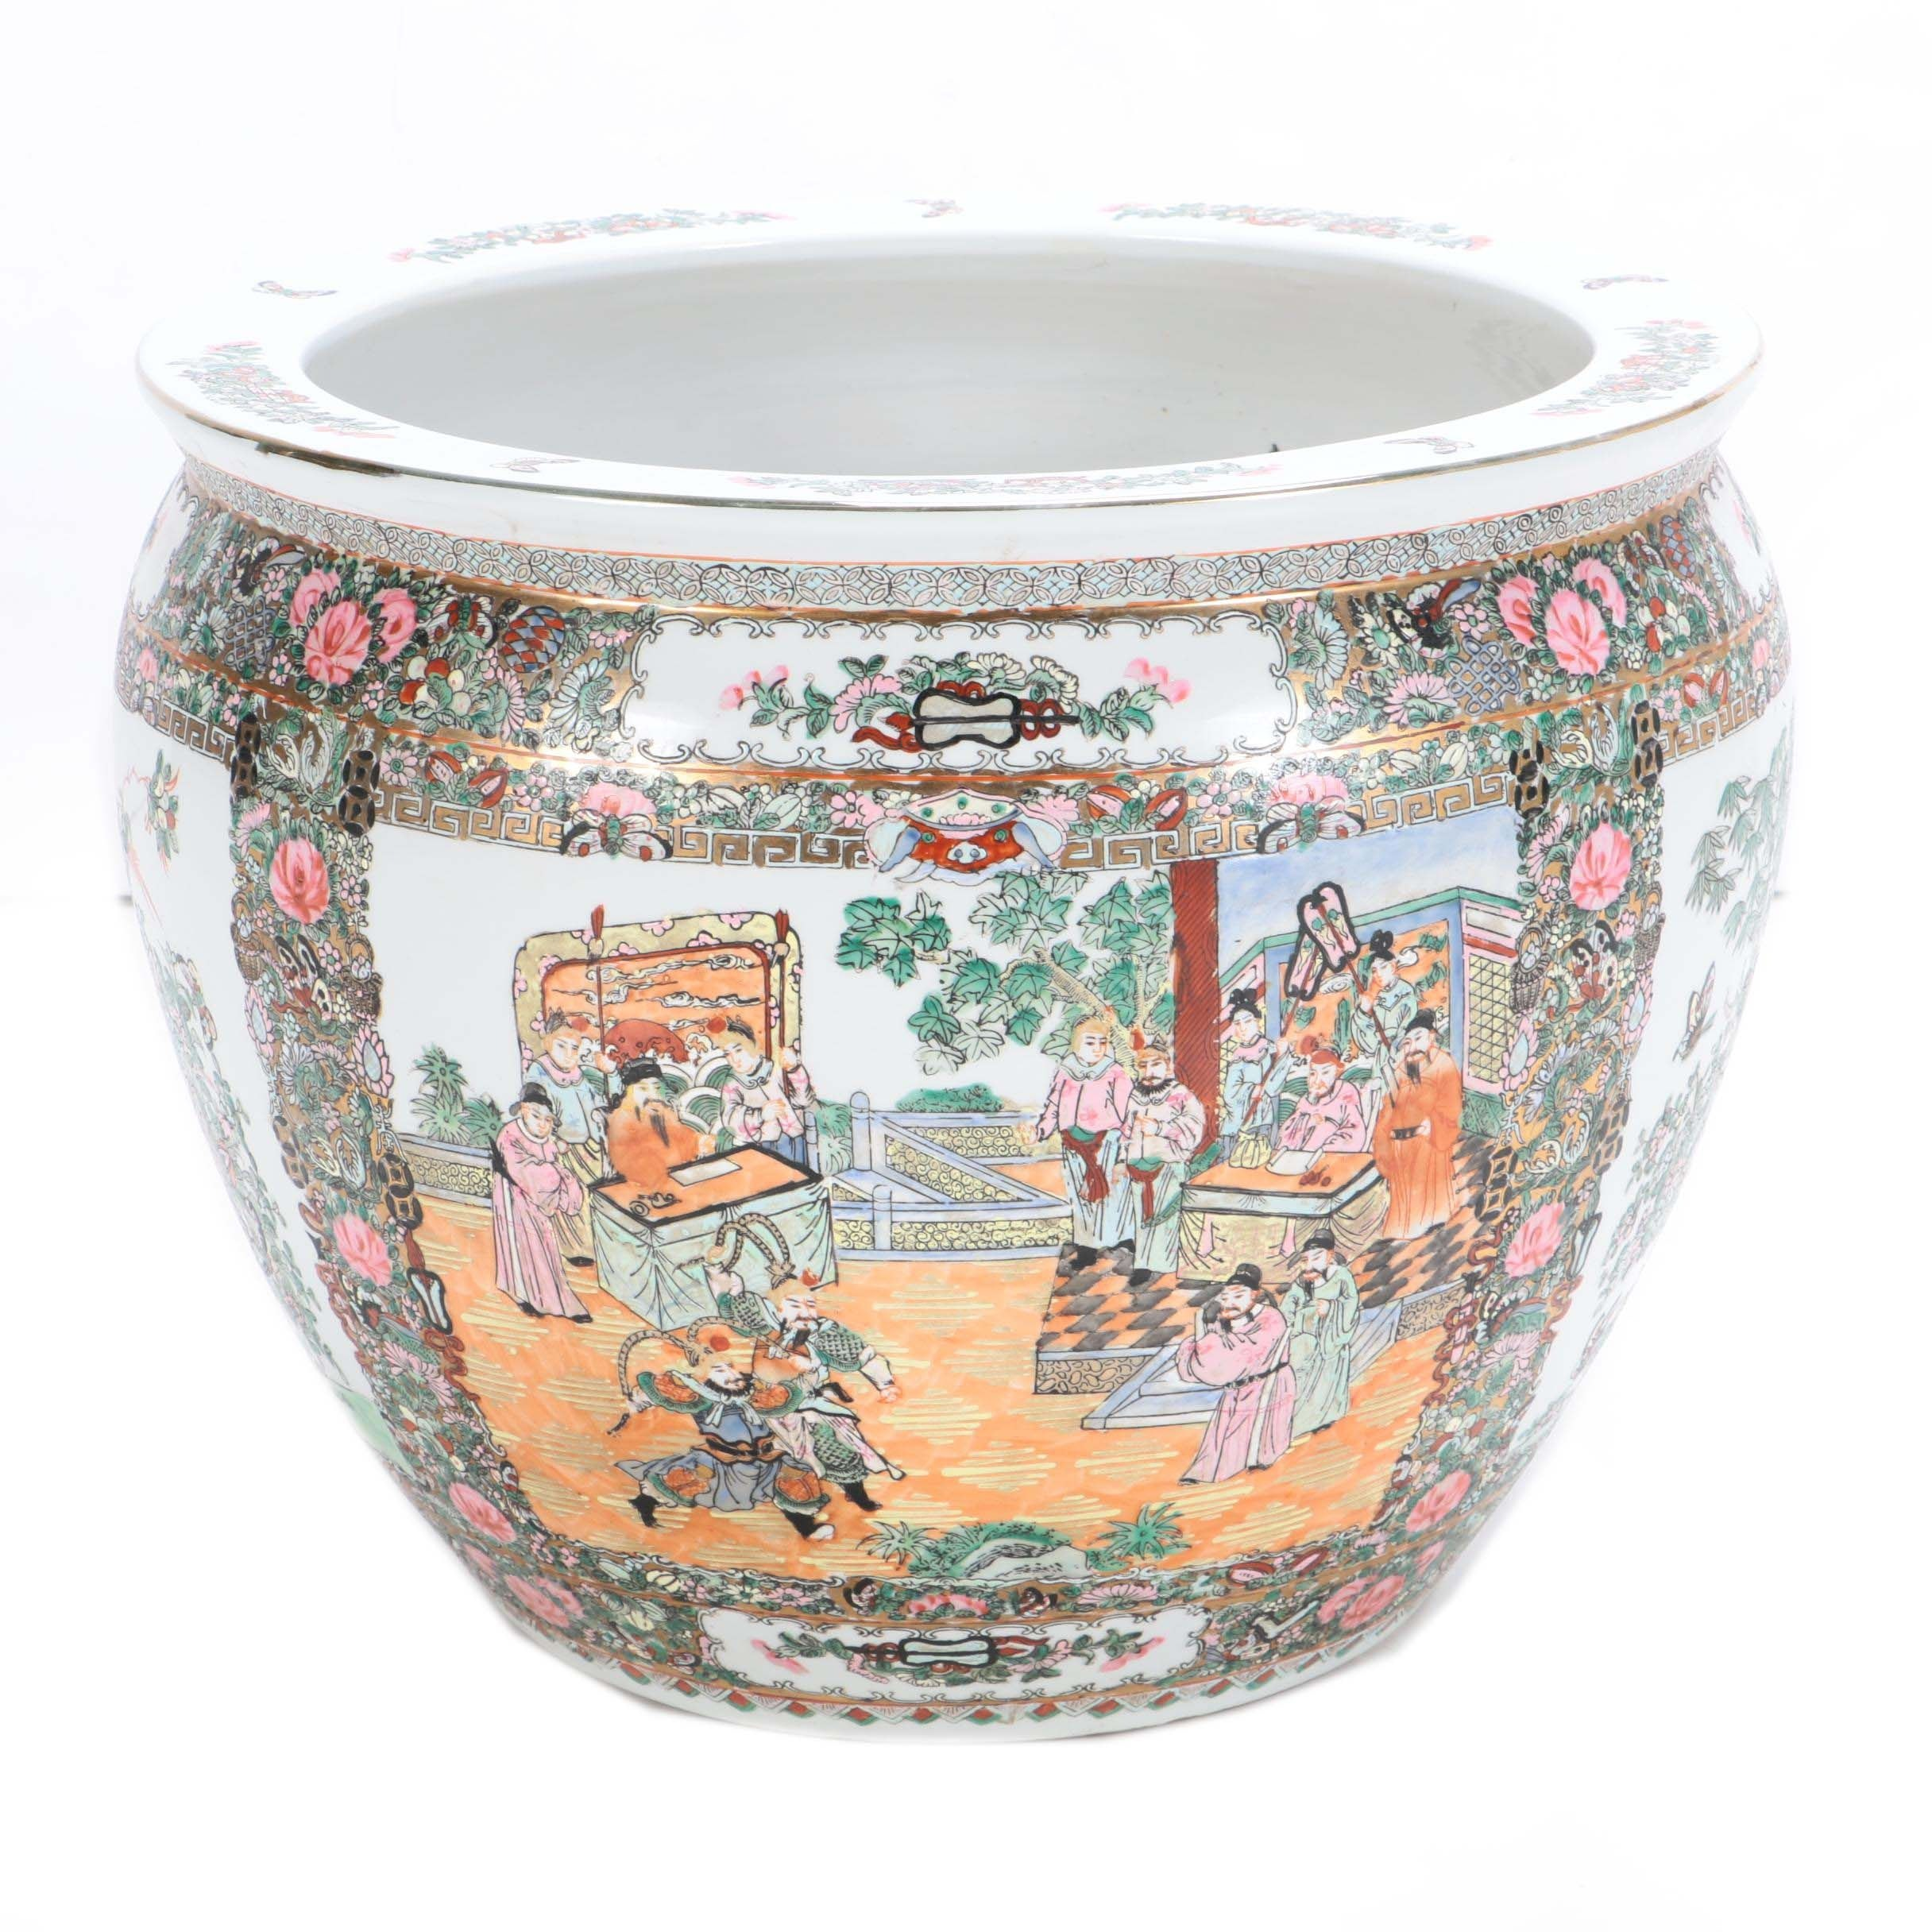 Chinese Ceramic Fish Bowl Planter with Bird, Floral and Figural Scenes